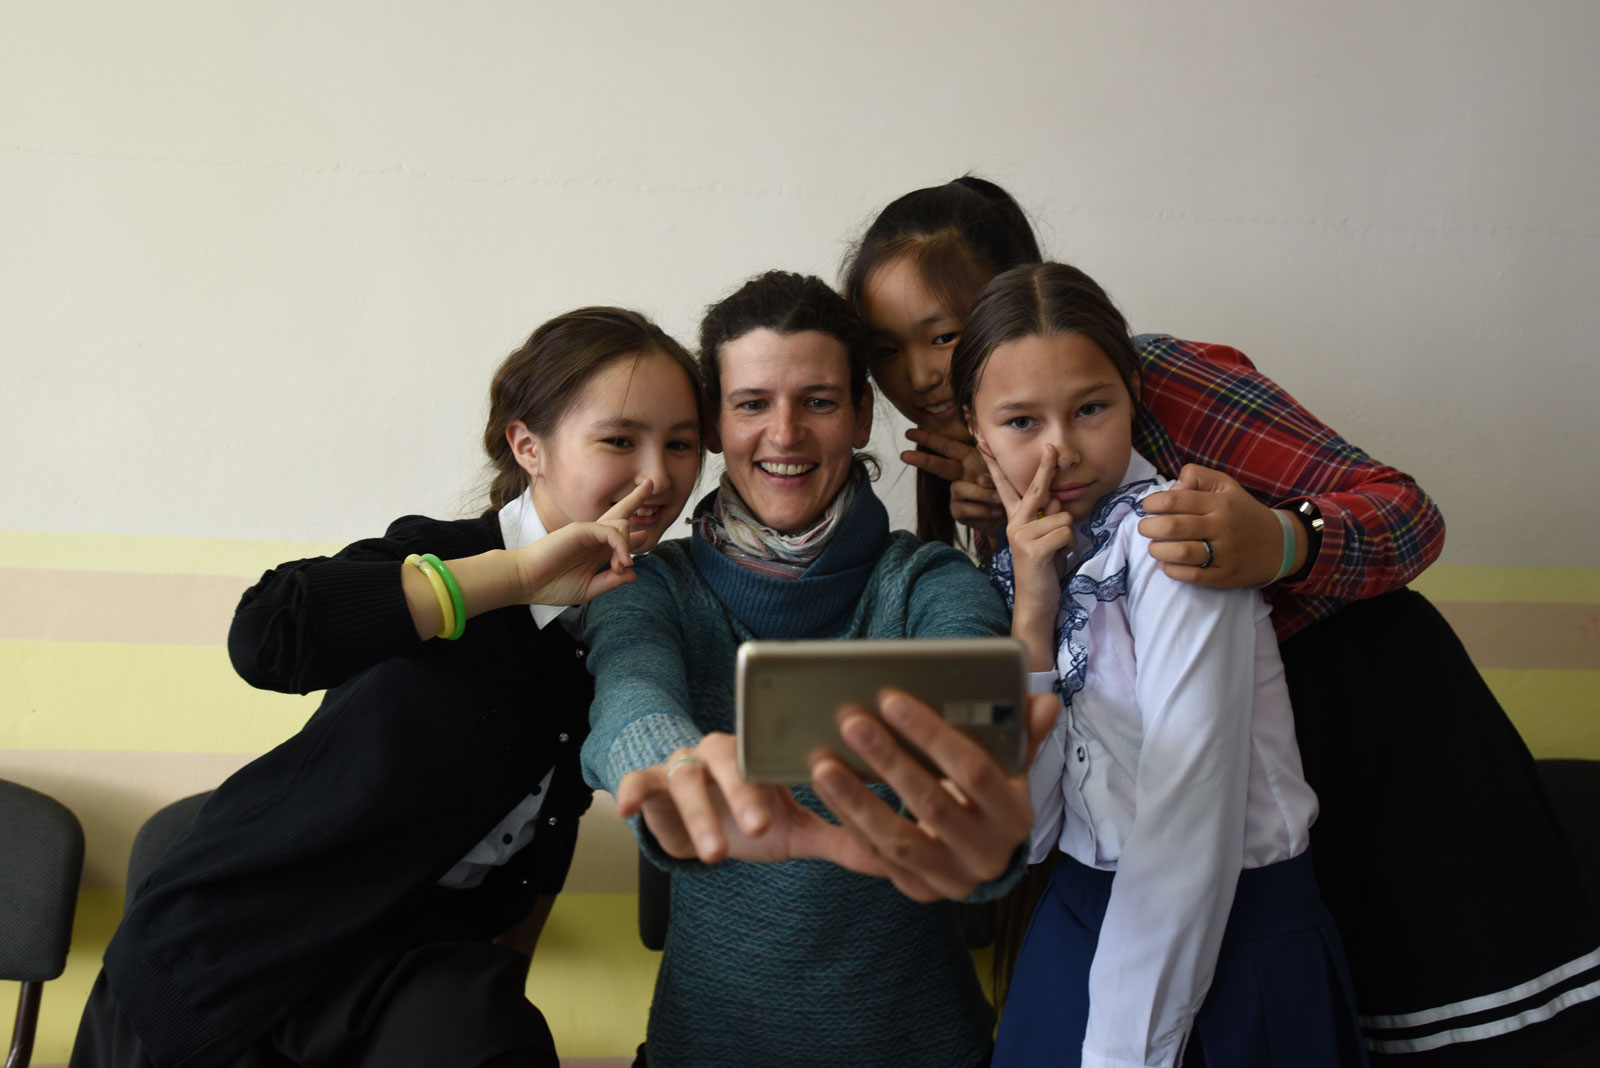 Jennifer Kingsley poses for a selfie with three young girls.